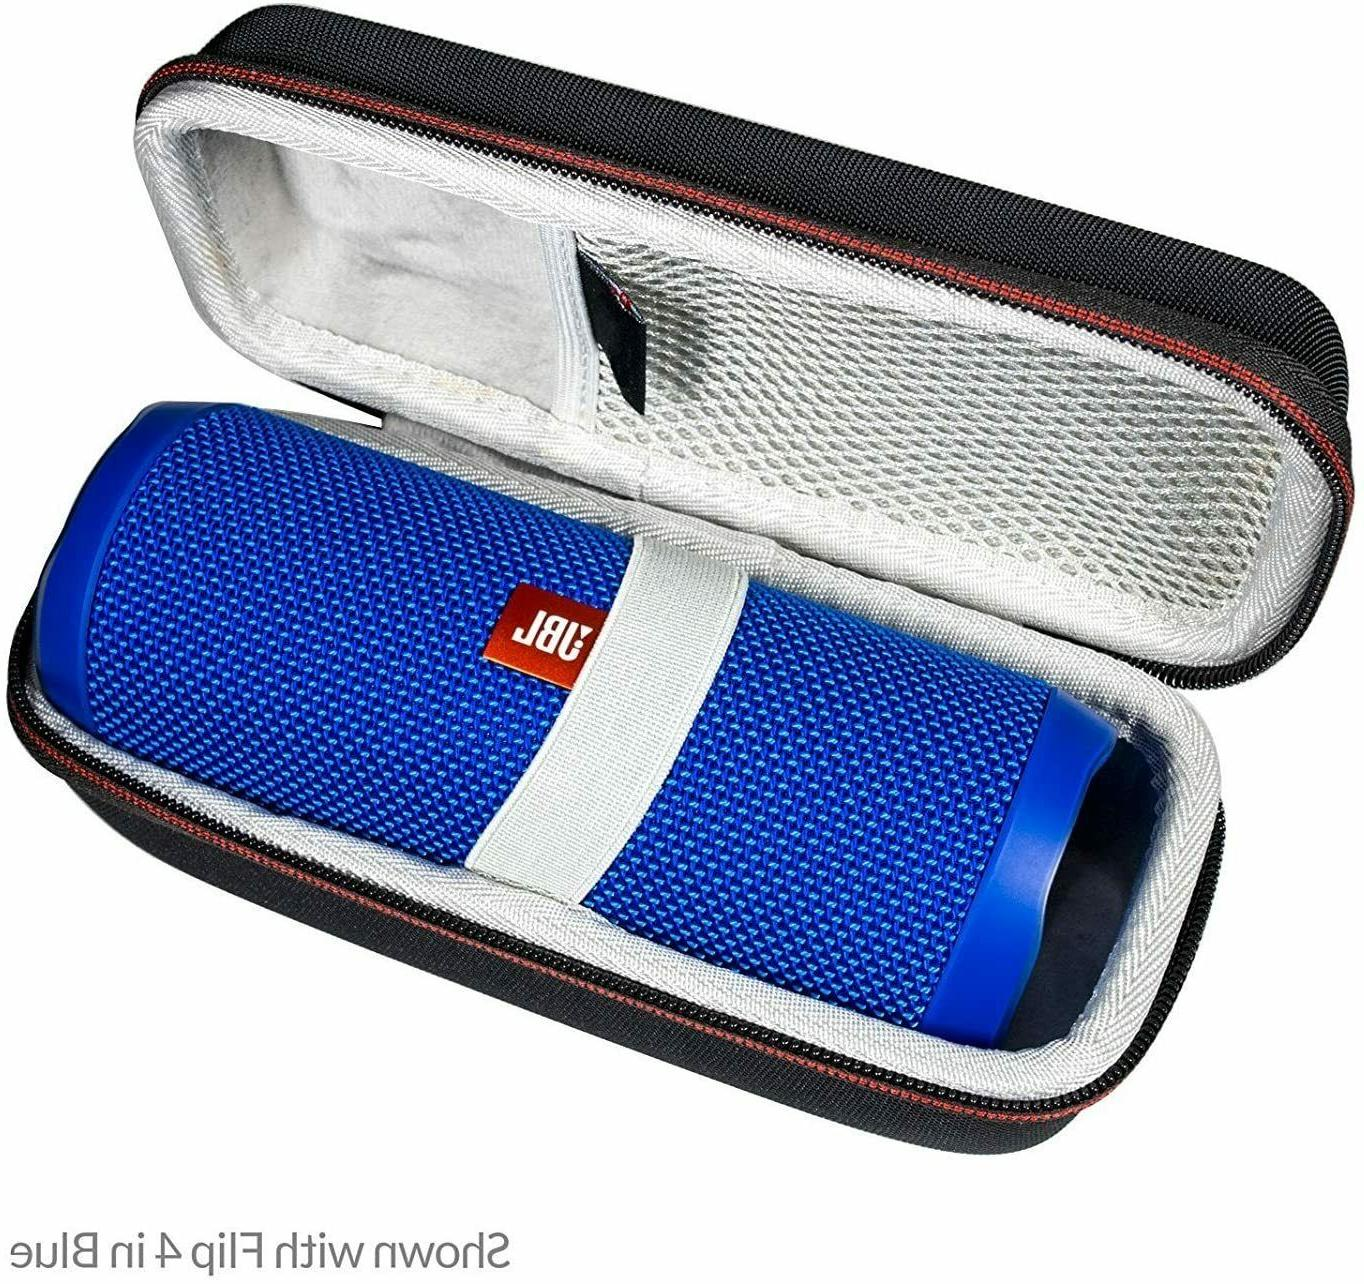 JBL Flip4 Wireless Speaker Protective